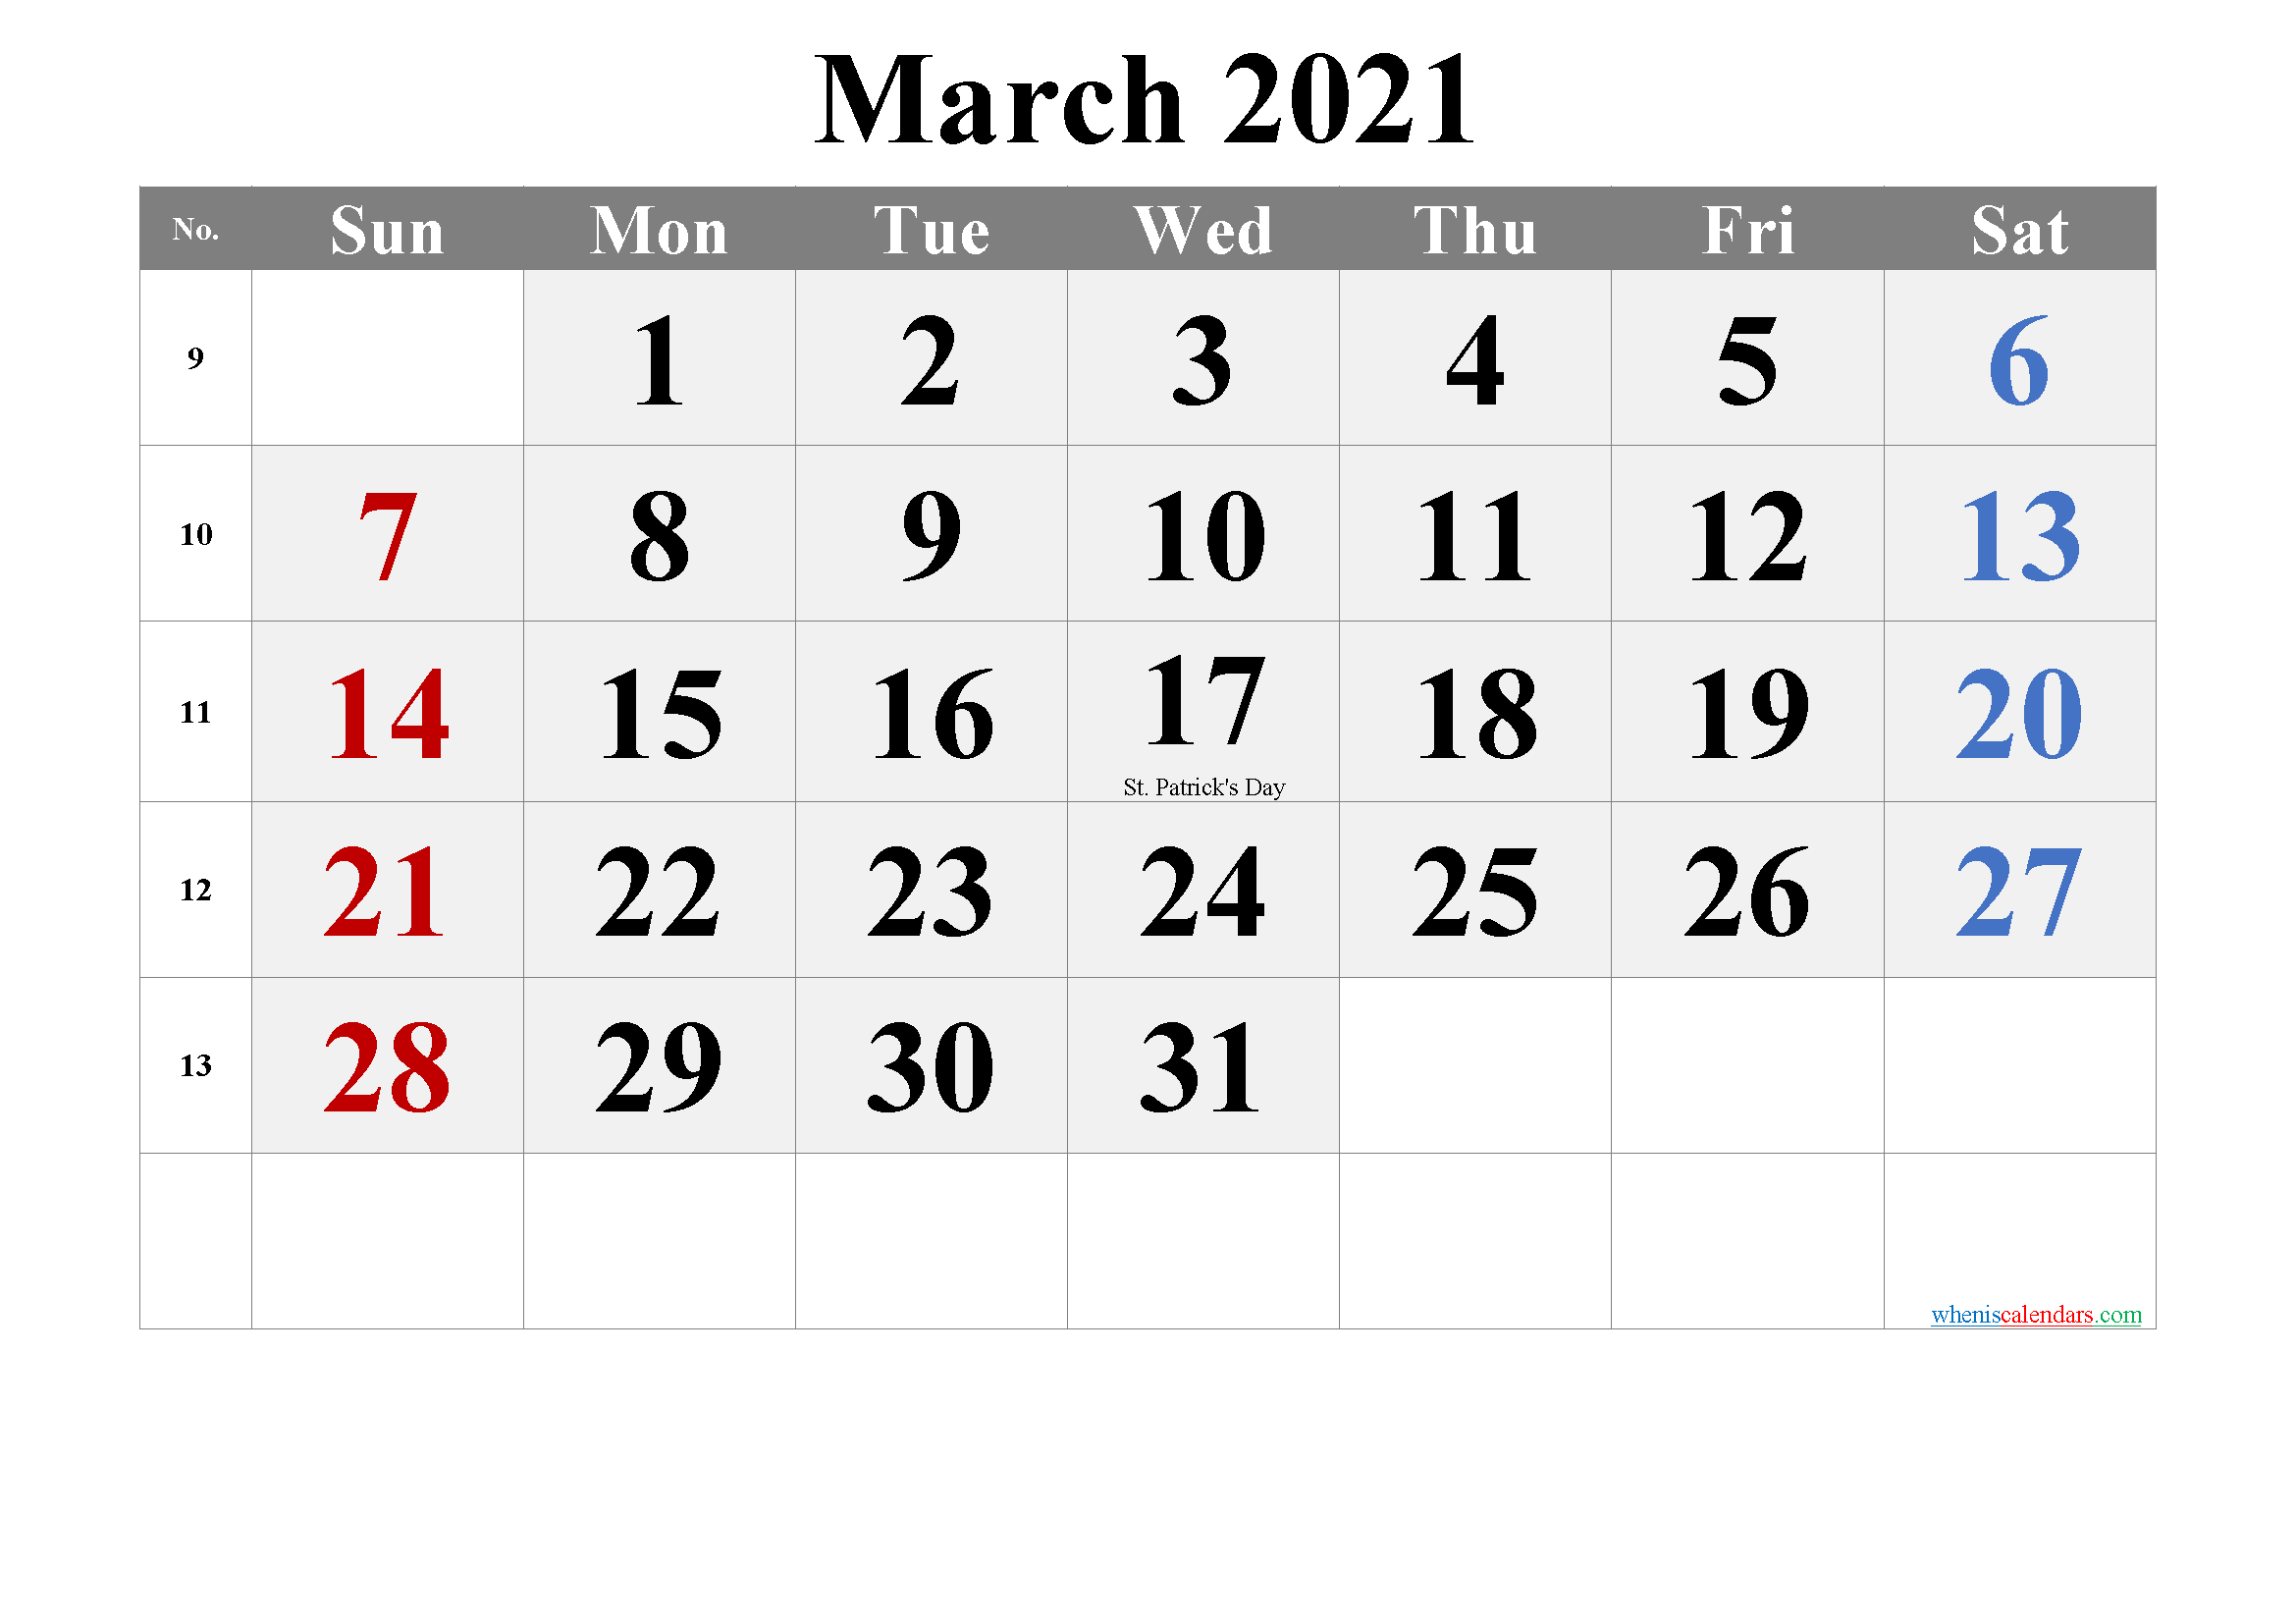 March 2021 Printable Calendar With Holidays - Free Throughout March 2021 Calendar Images